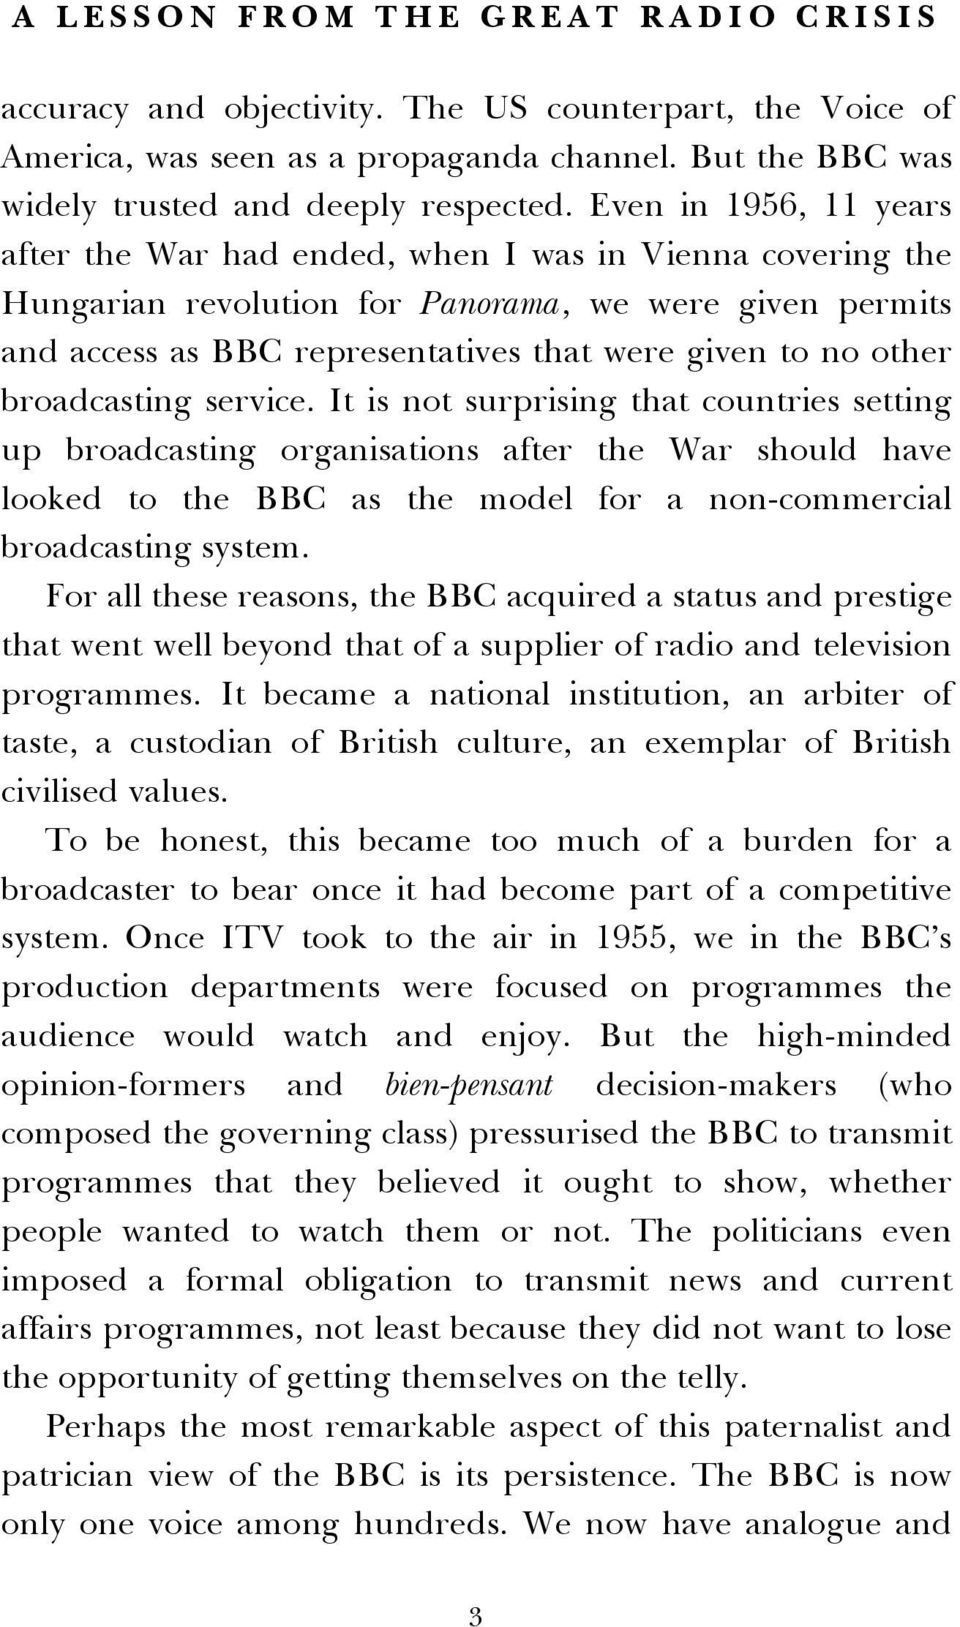 other broadcasting service. It is not surprising that countries setting up broadcasting organisations after the War should have looked to the BBC as the model for a non-commercial broadcasting system.